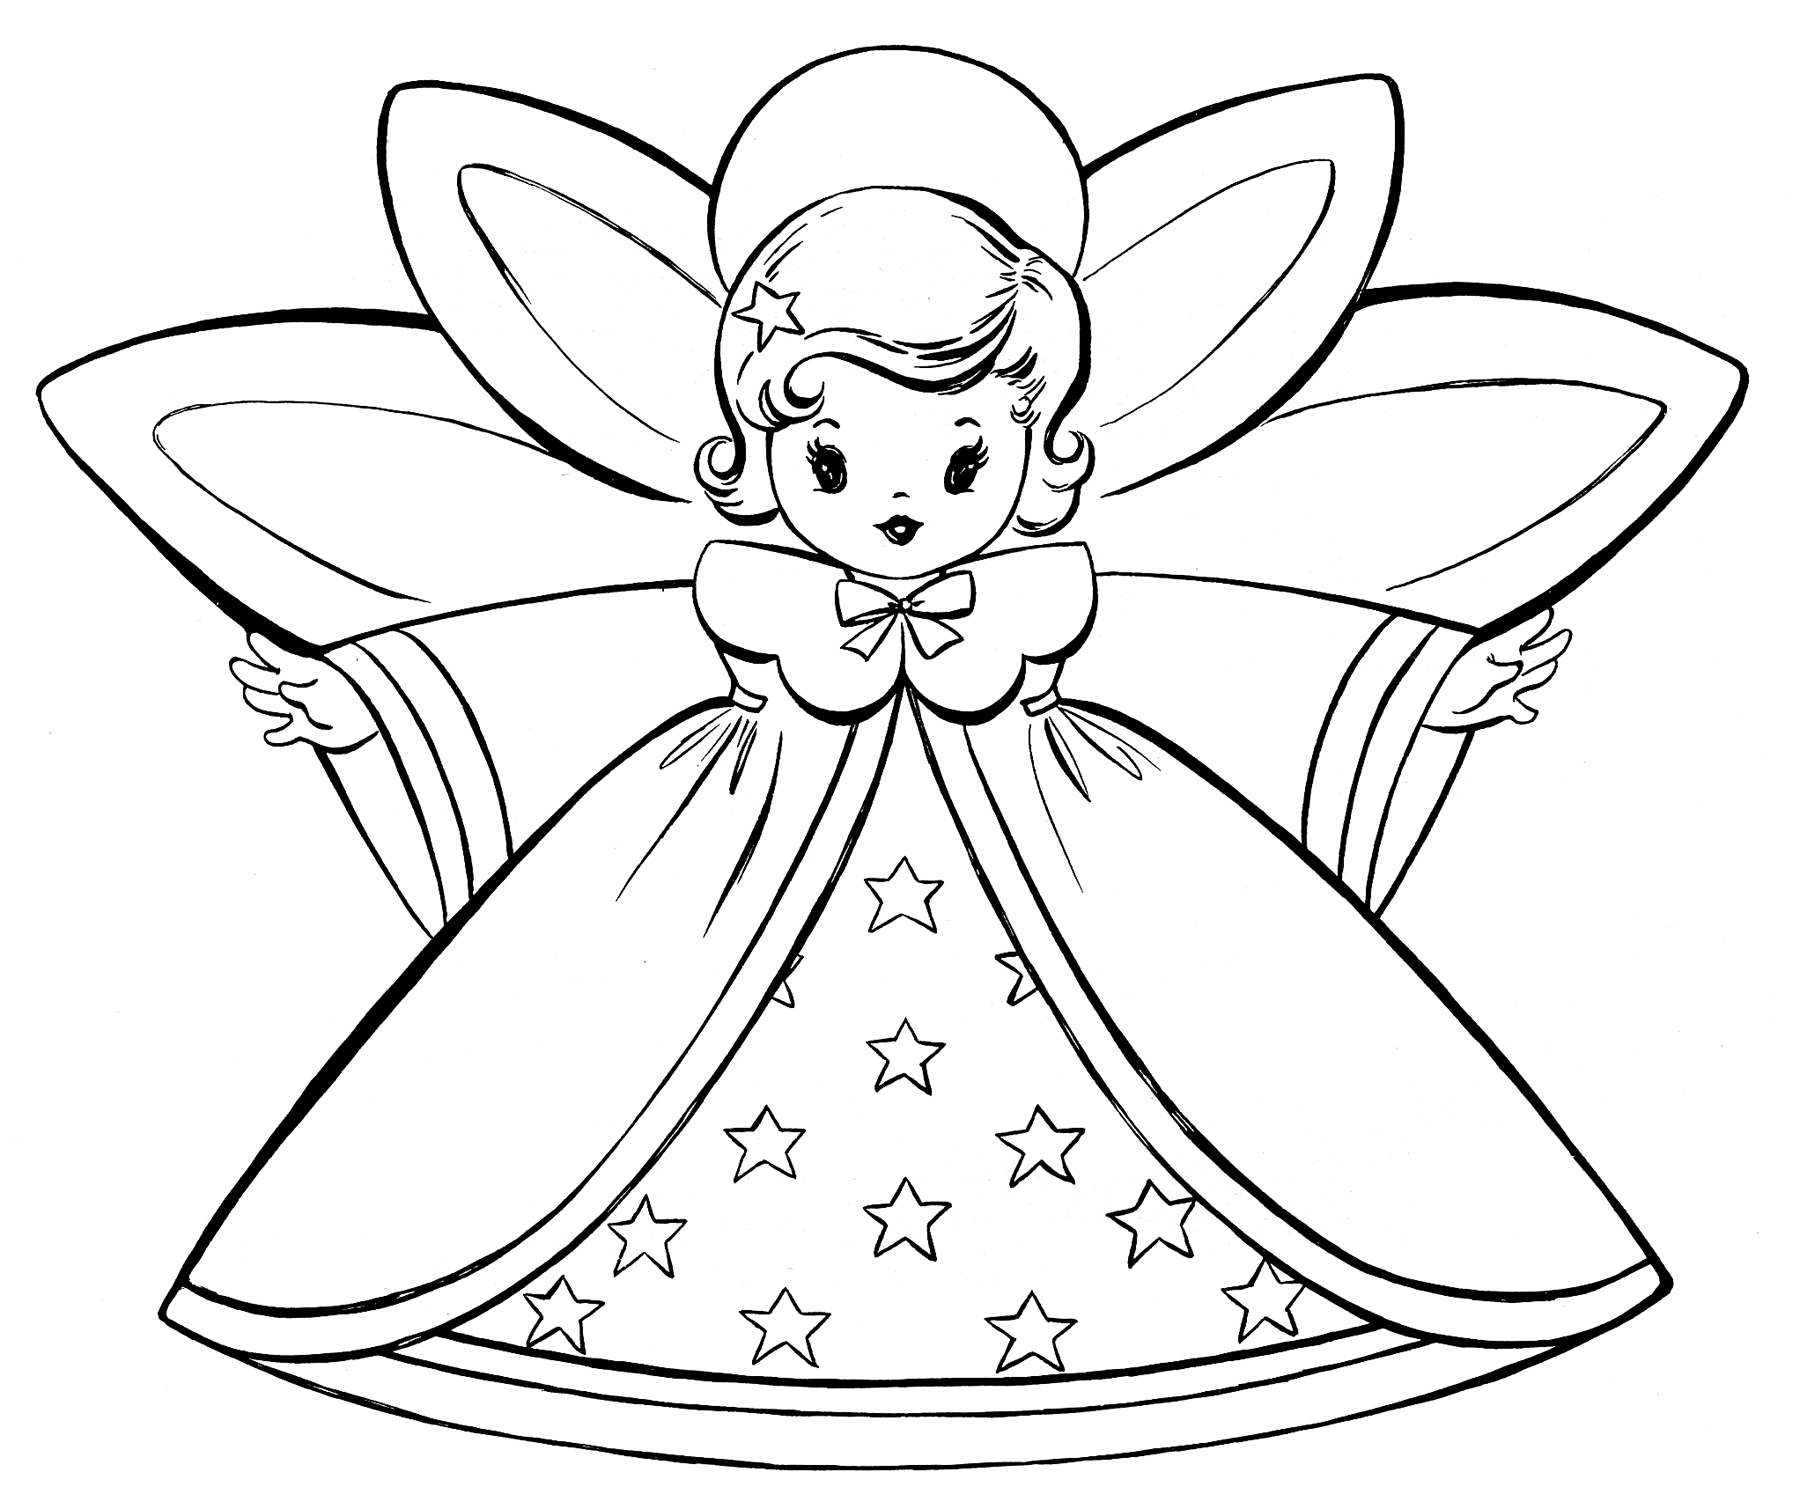 Christmas Coloring Pages For 11 Year Olds With Free Retro Angels The Graphics Fairy